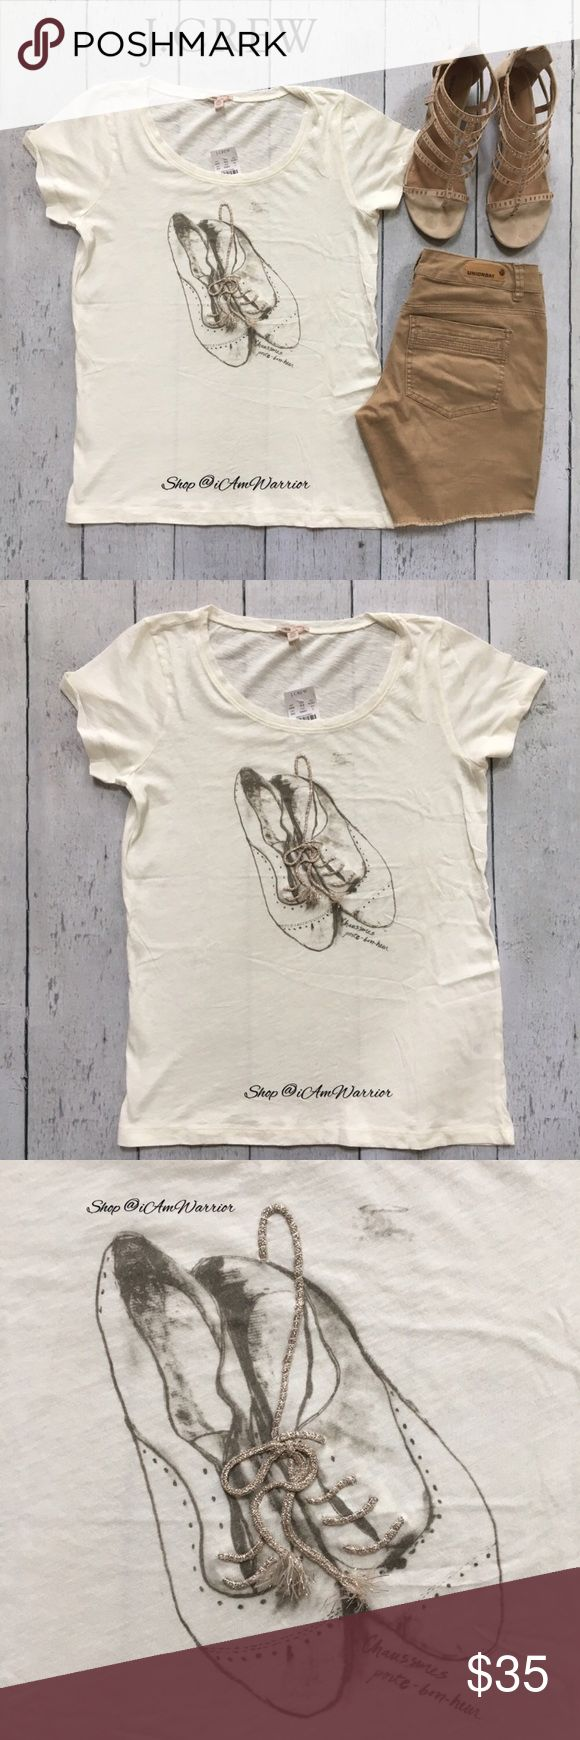 """J.Crew NWT embroidered Oxford shoe t-shirt Adorable ivory cotton shirt sleeve J. Crew t-shirt w/ taupe/tan graphic print of ladies oxford lace up shoes. The laces in the shoes is actually metallic embroidery. Also has written in French 'Good looking shoes'! Size large, but could easily accommodate a medium. Please use provided measurements as a guide. Approximate unstretched measurements laying flat are: 26"""" long, 18.5"""" across bust. Shorts & shoes not for sale. Please read bio regarding…"""